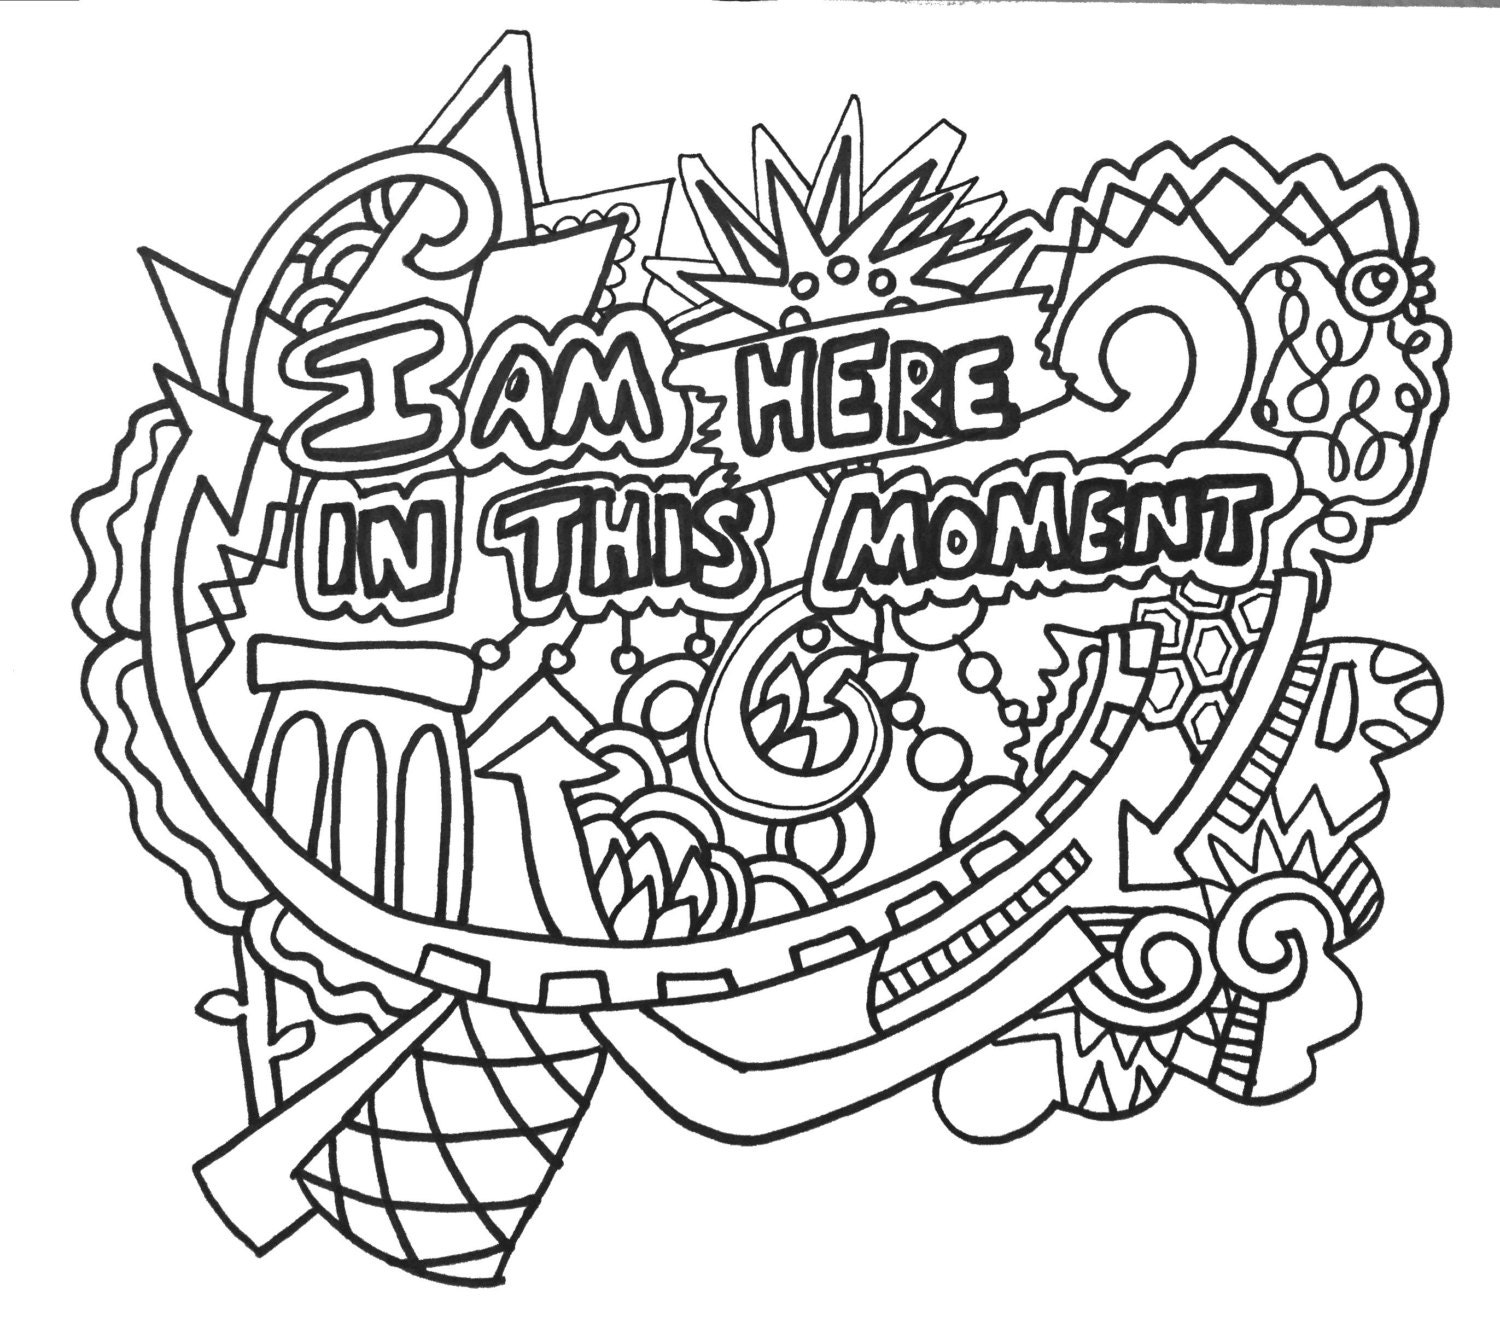 12 empowering affirmations coloringpages vol 1 original art